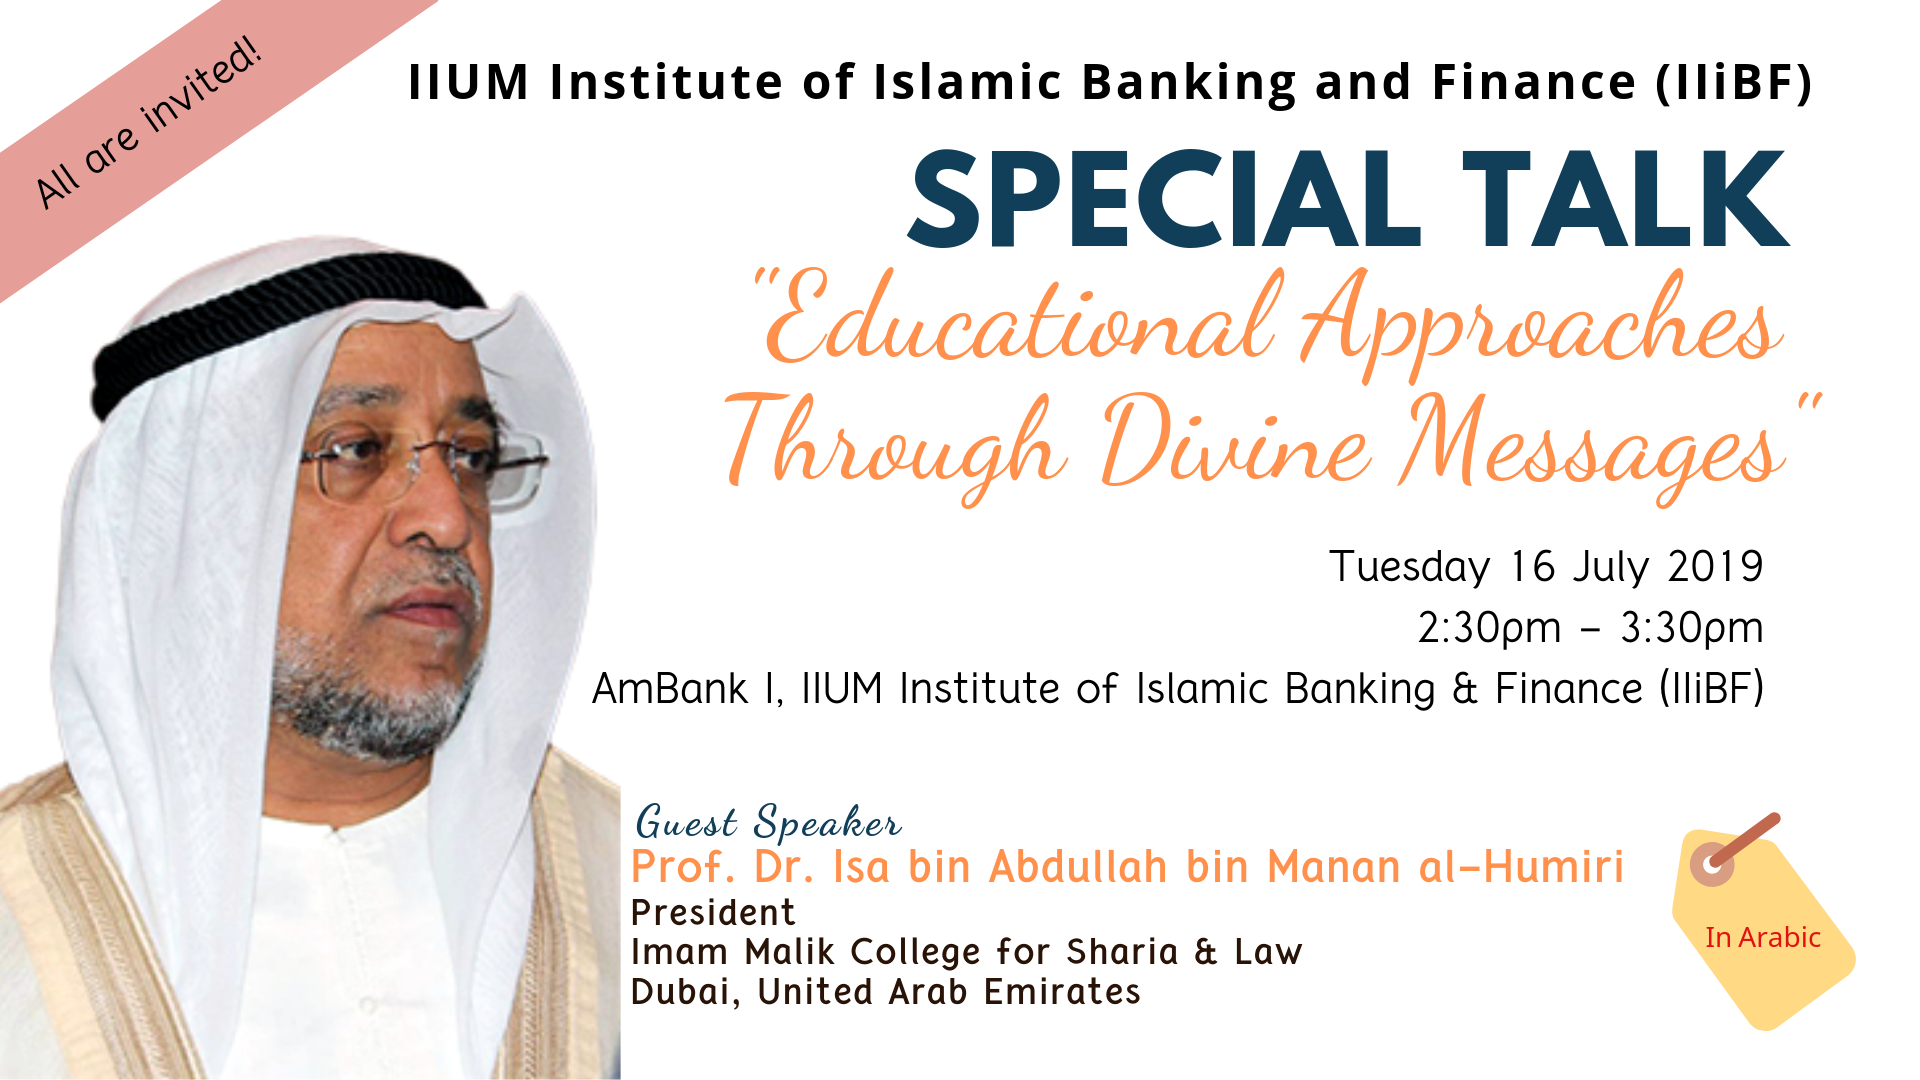 Special Talk - Professor Dr. Sheikh Issa President, Imam Malik College for Shari'a and Law